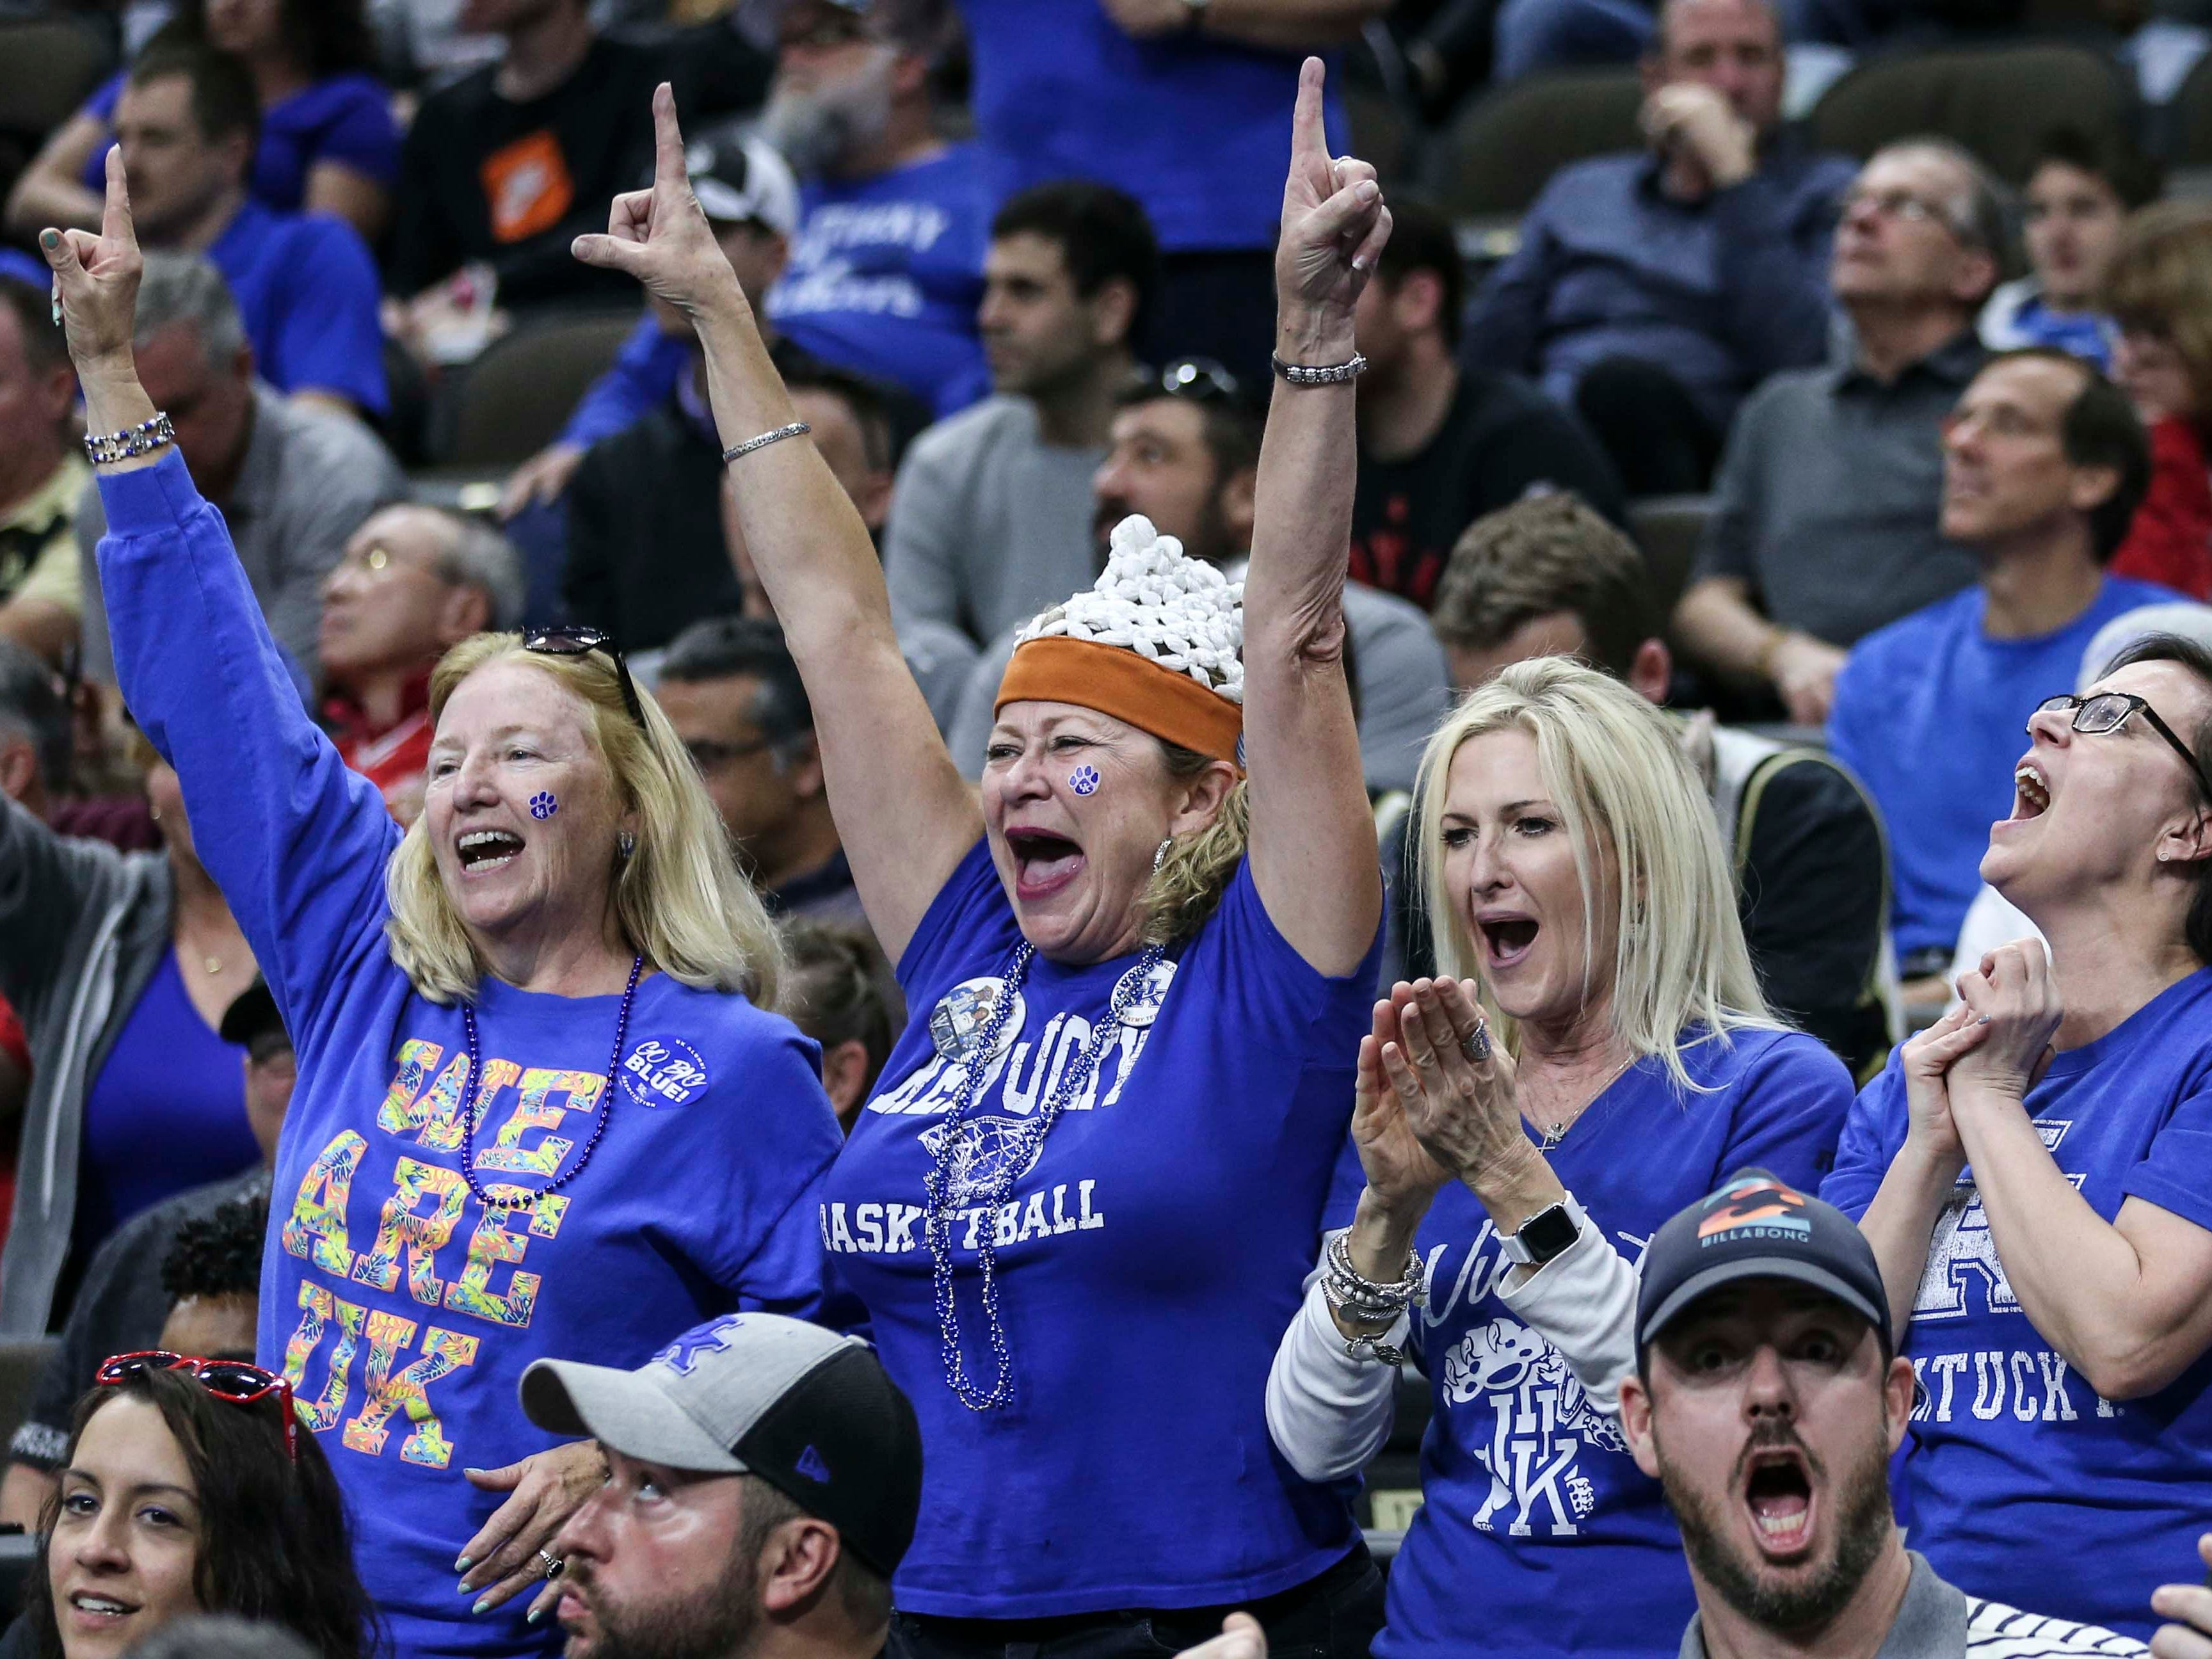 Kentucky fans cheer as the Wildcats beat a tenacious Wofford 62-56 in the second round game of the 2019 NCAA tournament in Jacksonville, Fla. March 23, 2019.